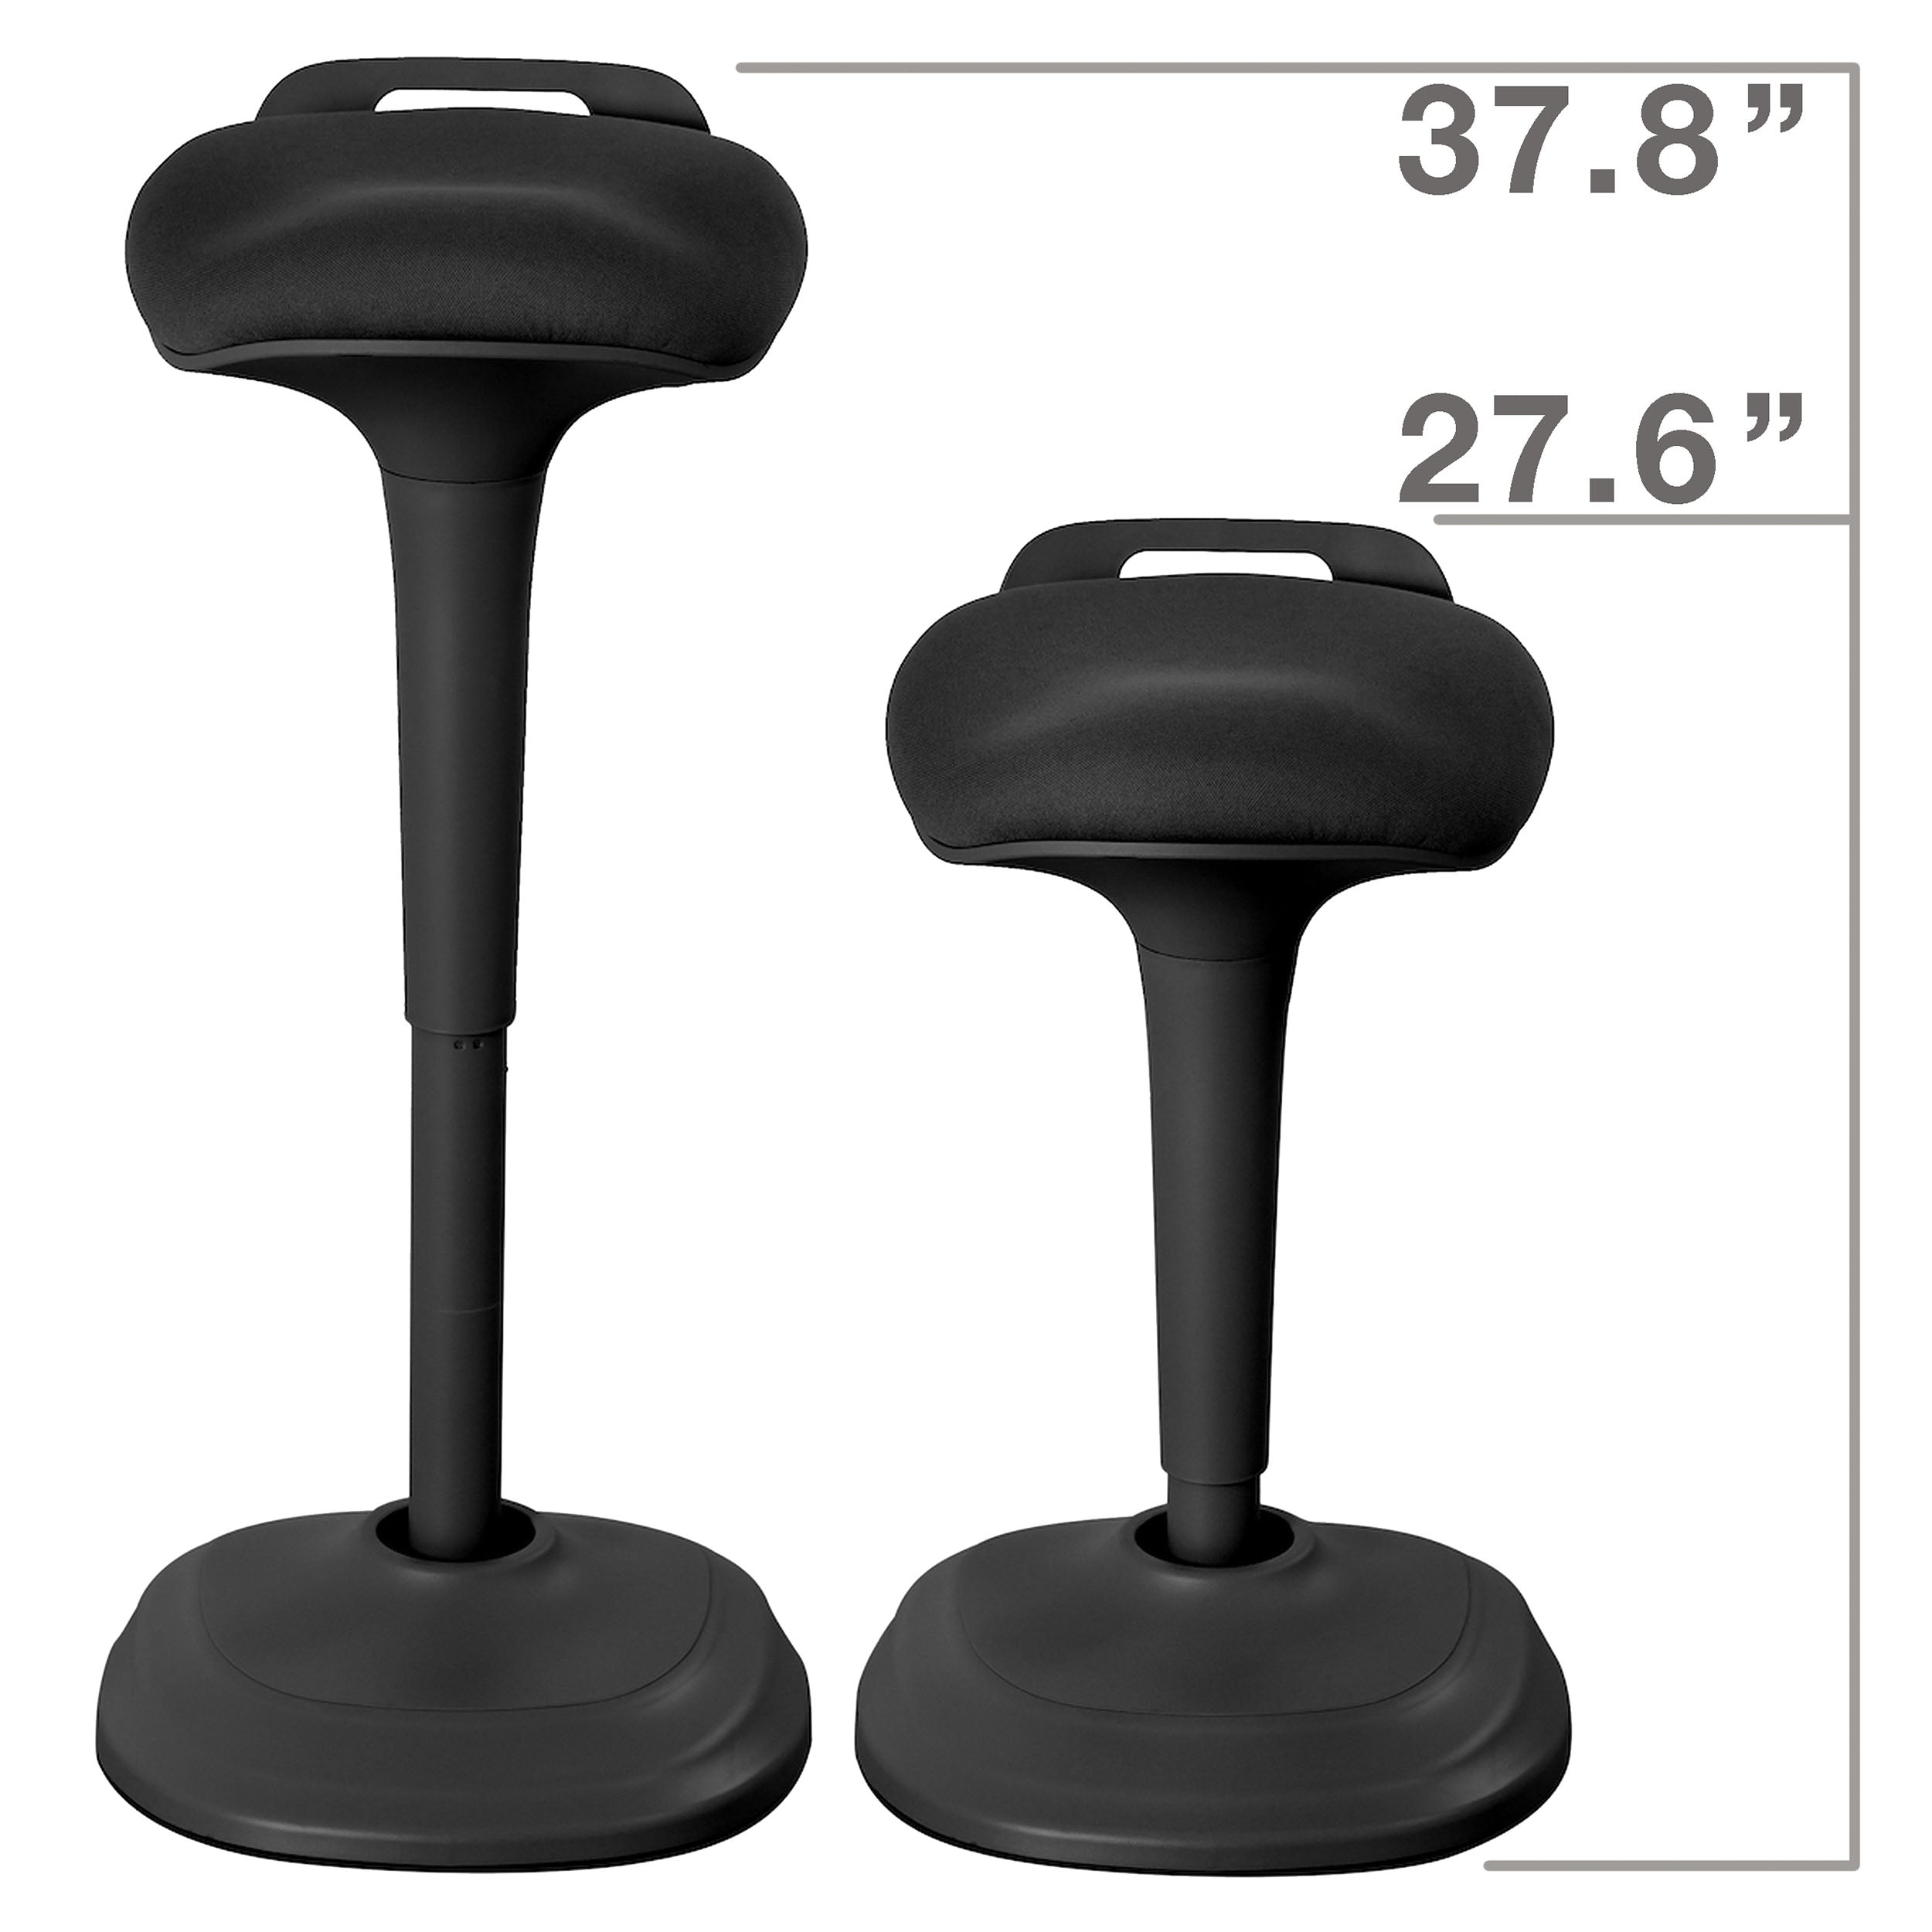 An image of the black wobble chair, showing the amount it can recess. The black wobble chair's height can be changed from 37.8 inches to 27.6 inches and vice versa.